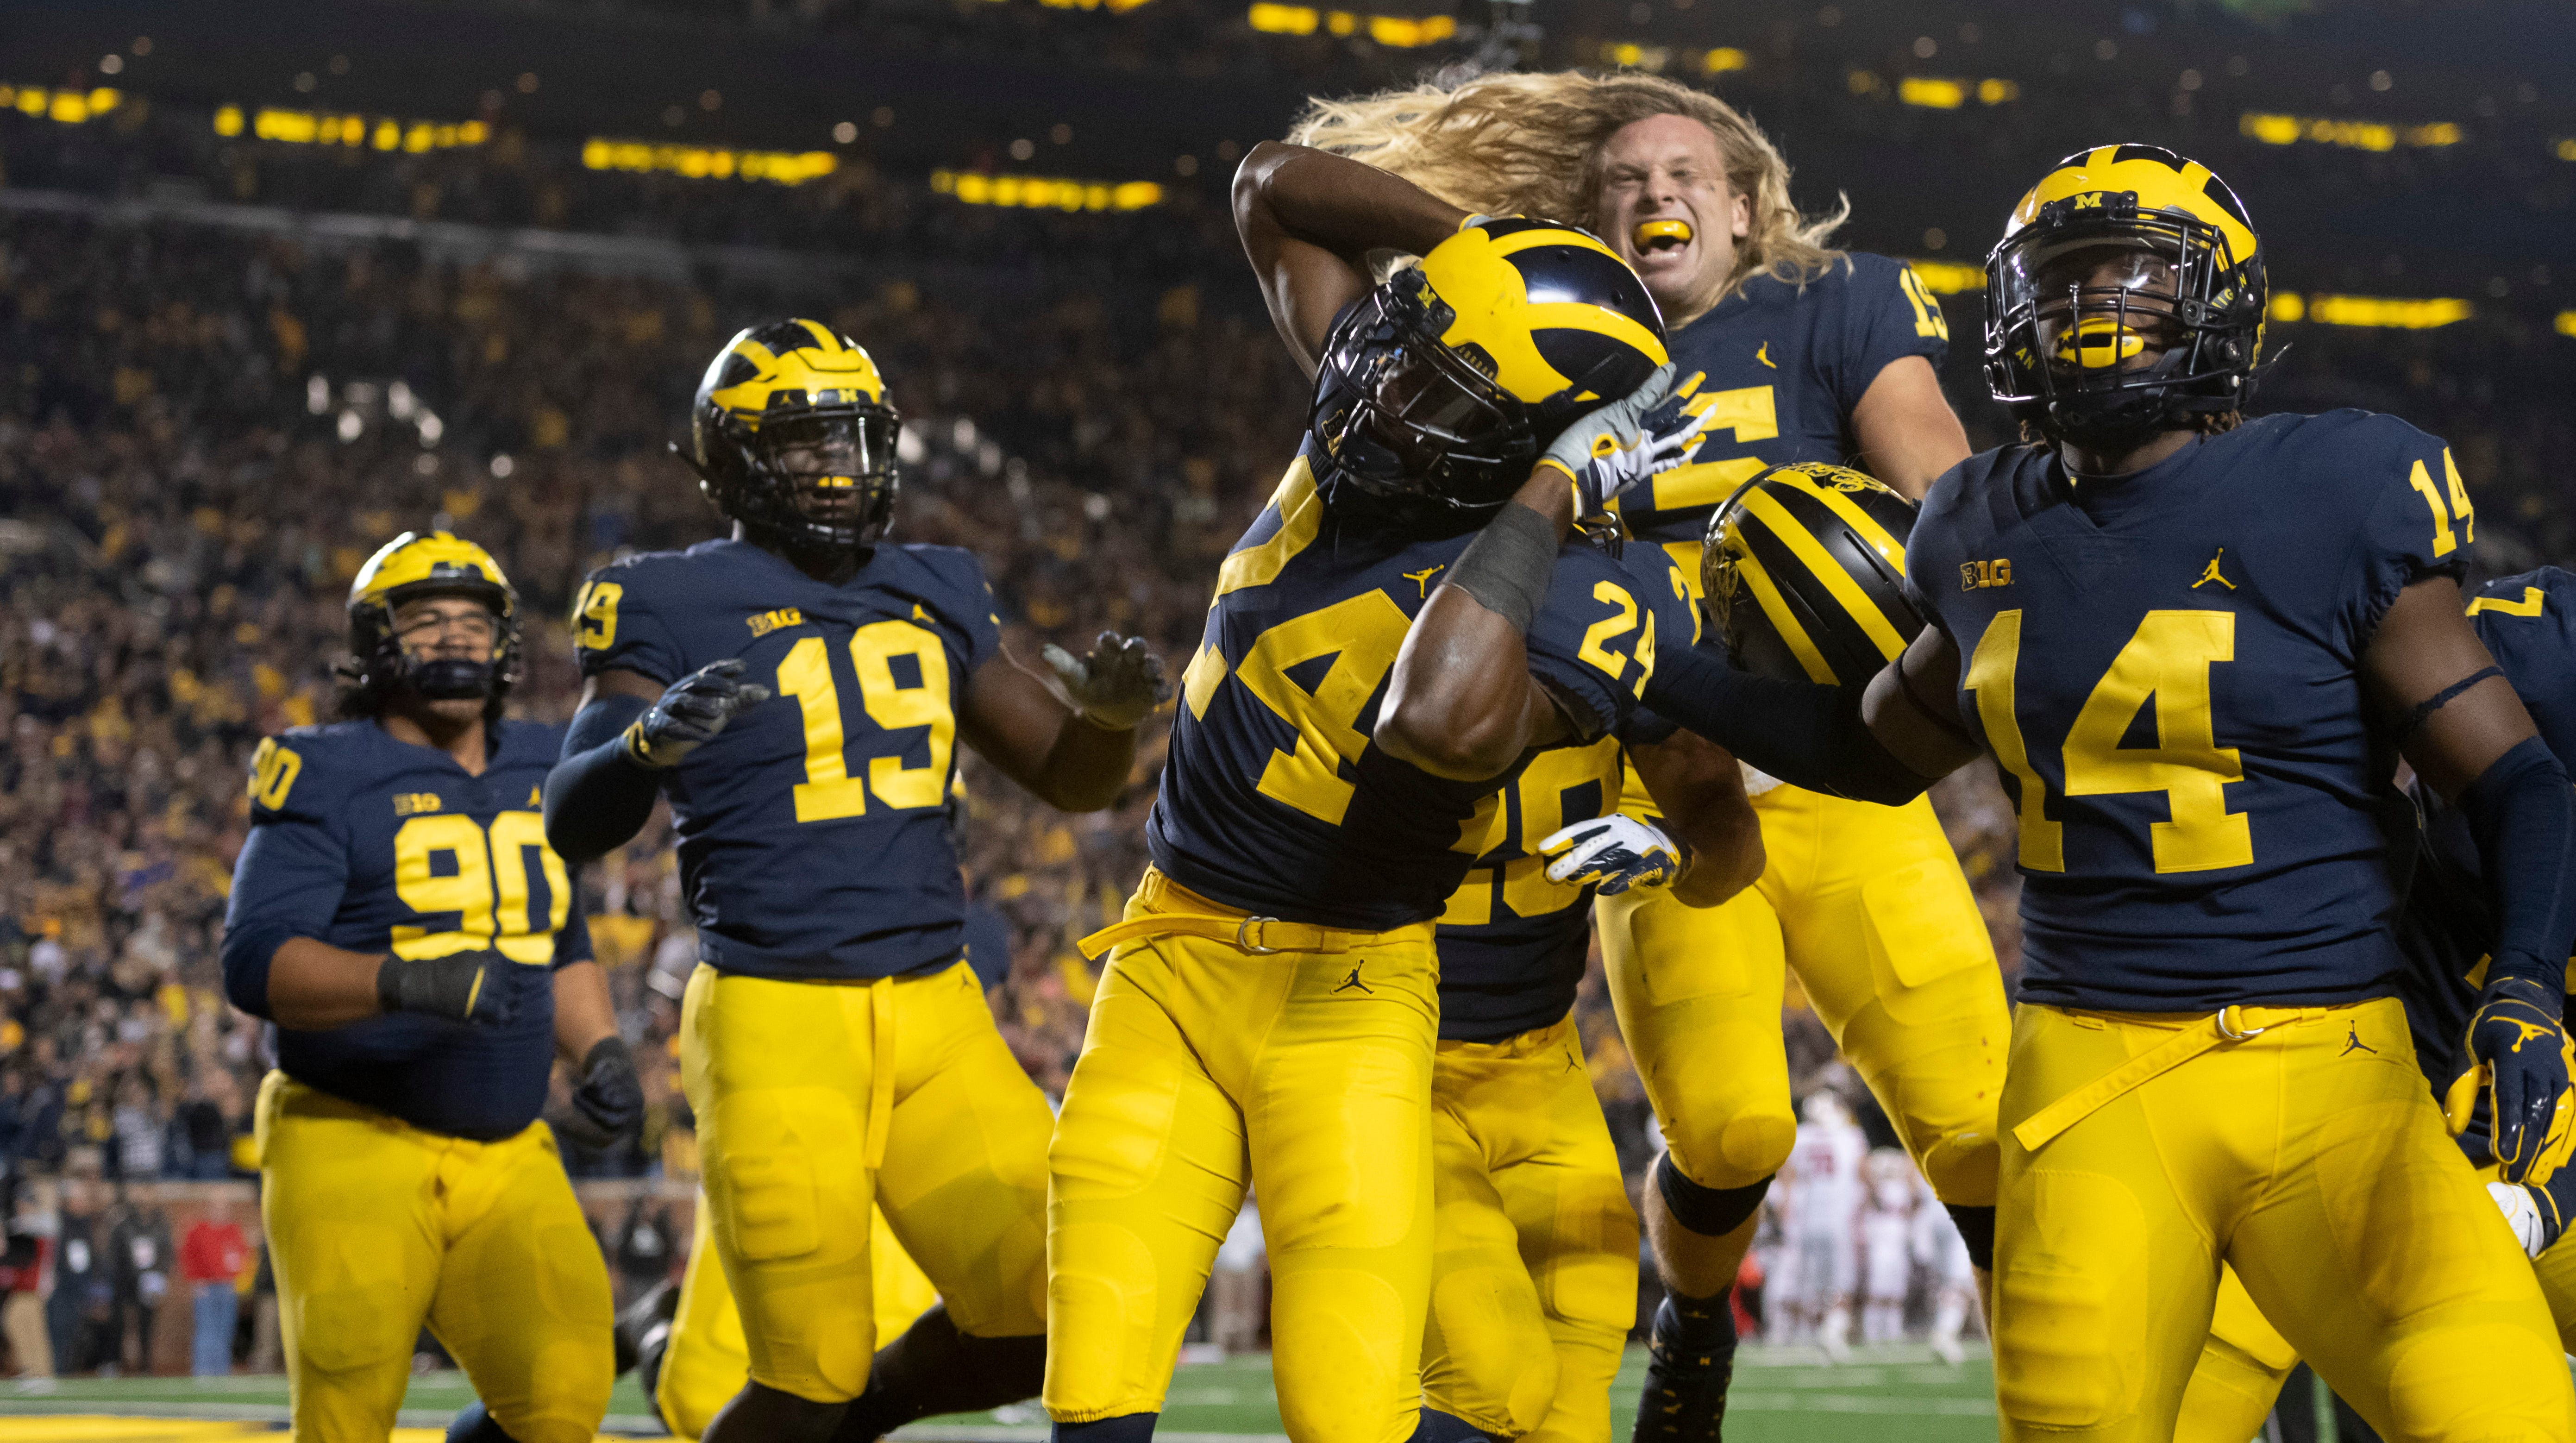 Wojo: When Wolverines' offense thumps like their defense, watch out